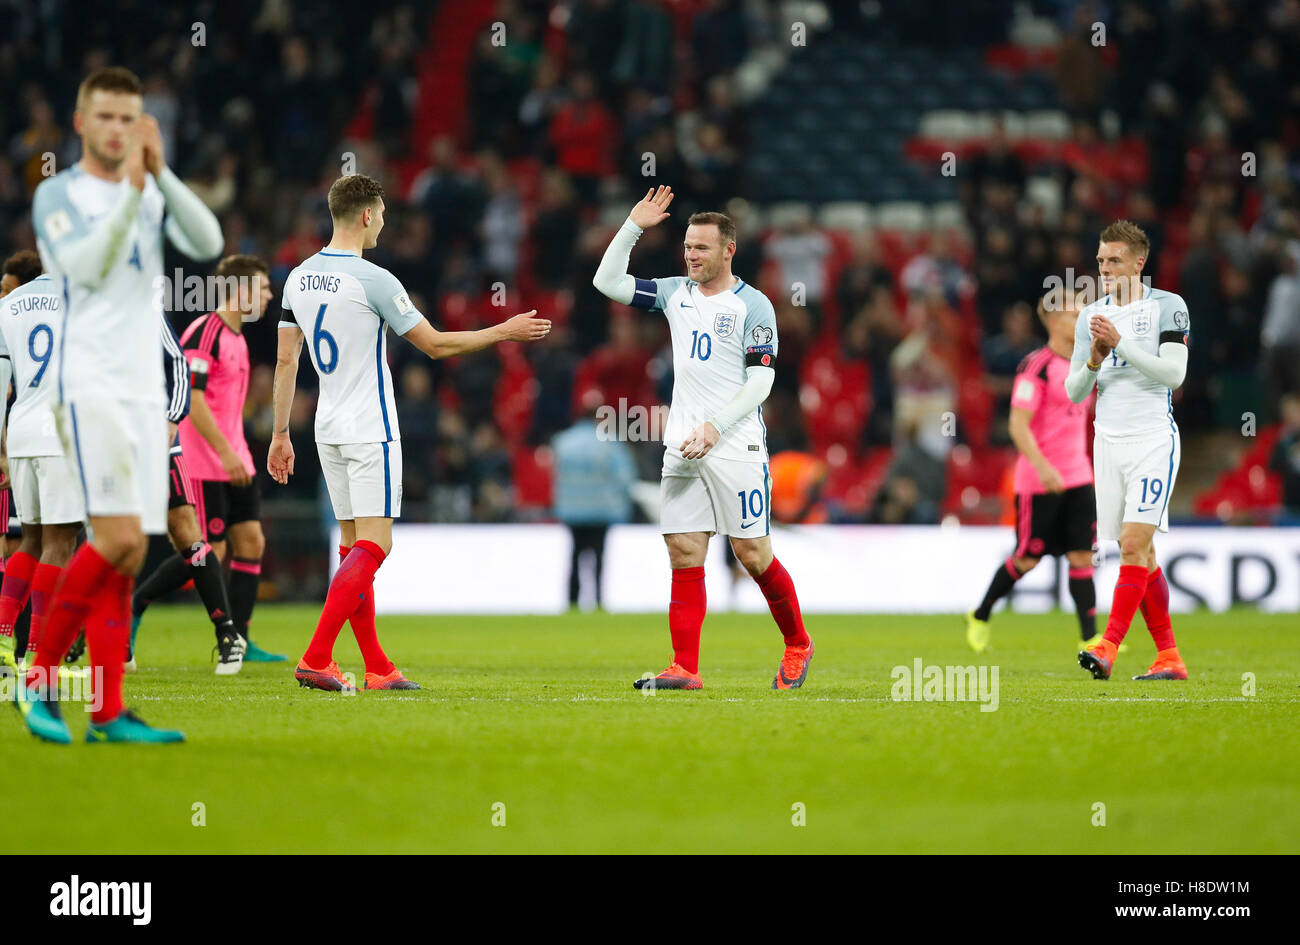 London, UK. 11th Nov, 2016. Players of England celebrate after the Group F match between England and Scotland at Stock Photo